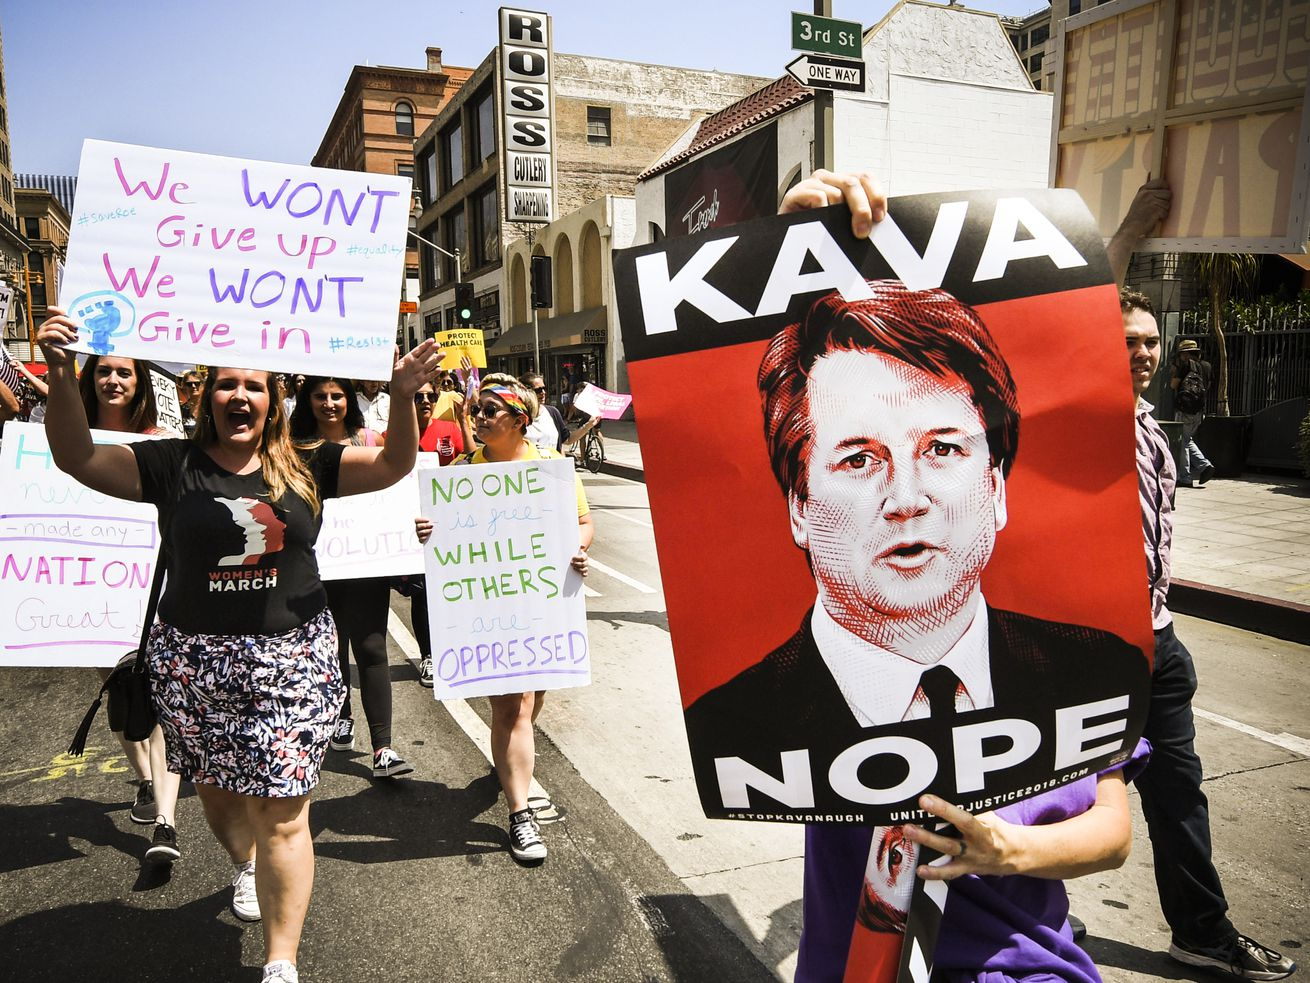 """Demonstrators march during the """"Unite For Justice"""" rally in protest of Judge Brett Kavanaugh's confirmation to the US Supreme Court in Los Angeles on August 26, 2018."""